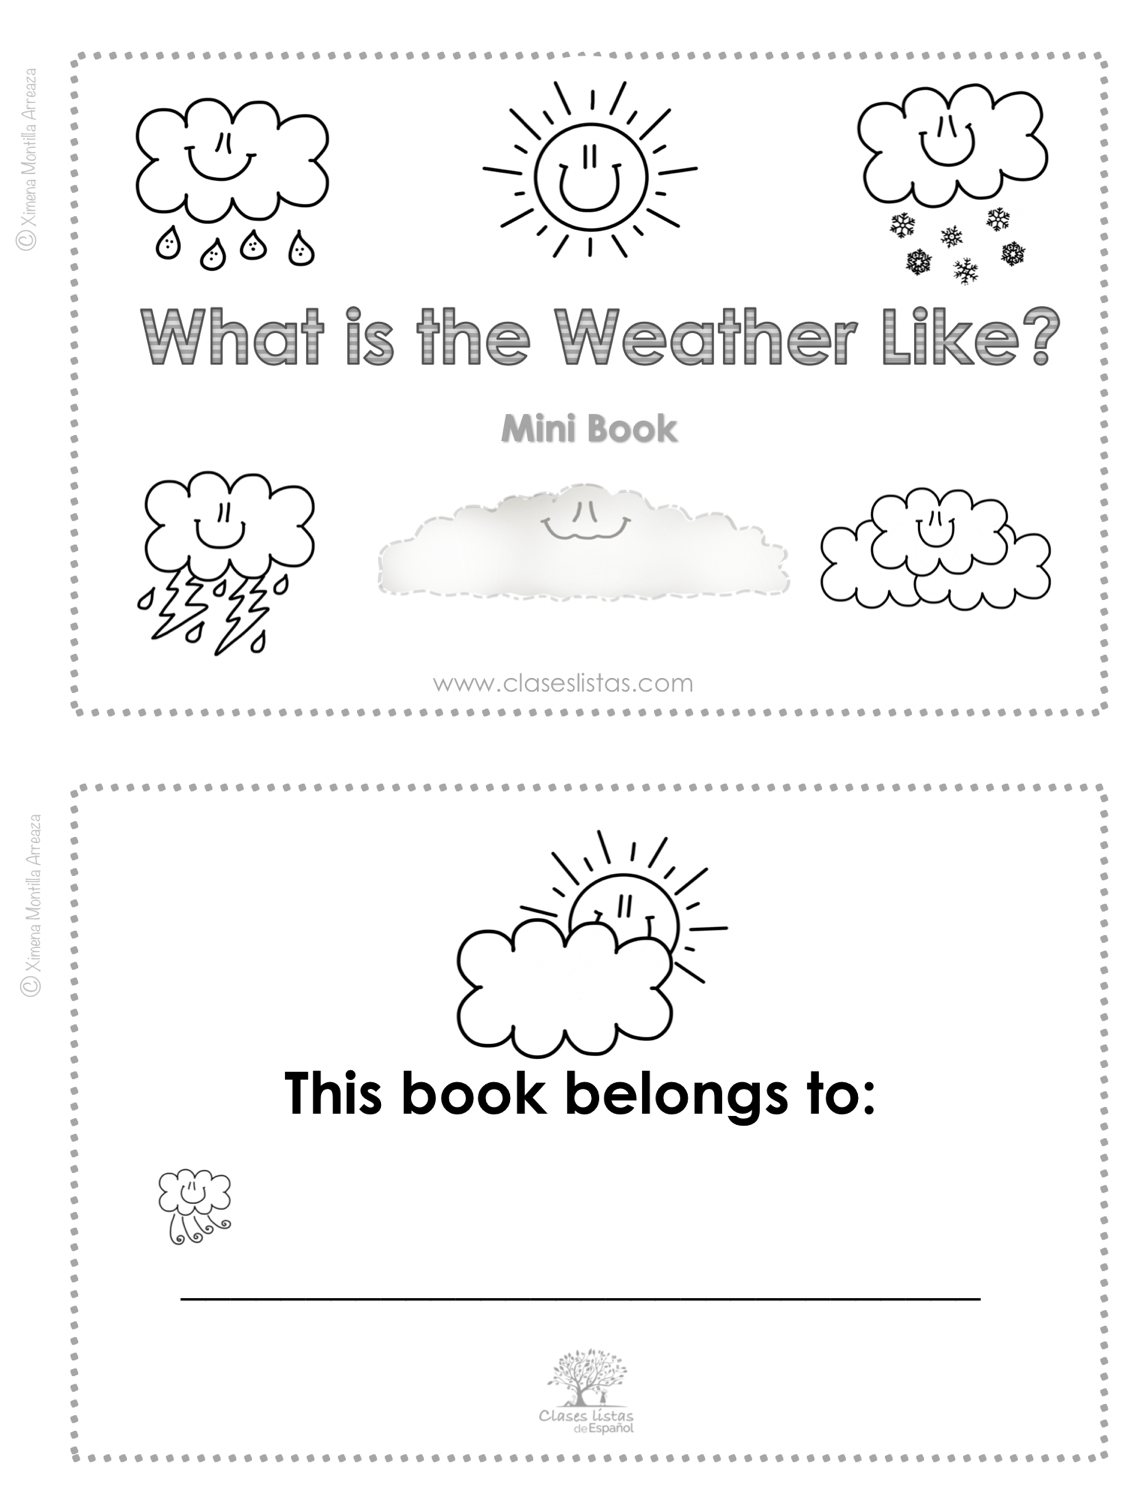 The Weather, What is the Weather Like?  Minibook. (English version)